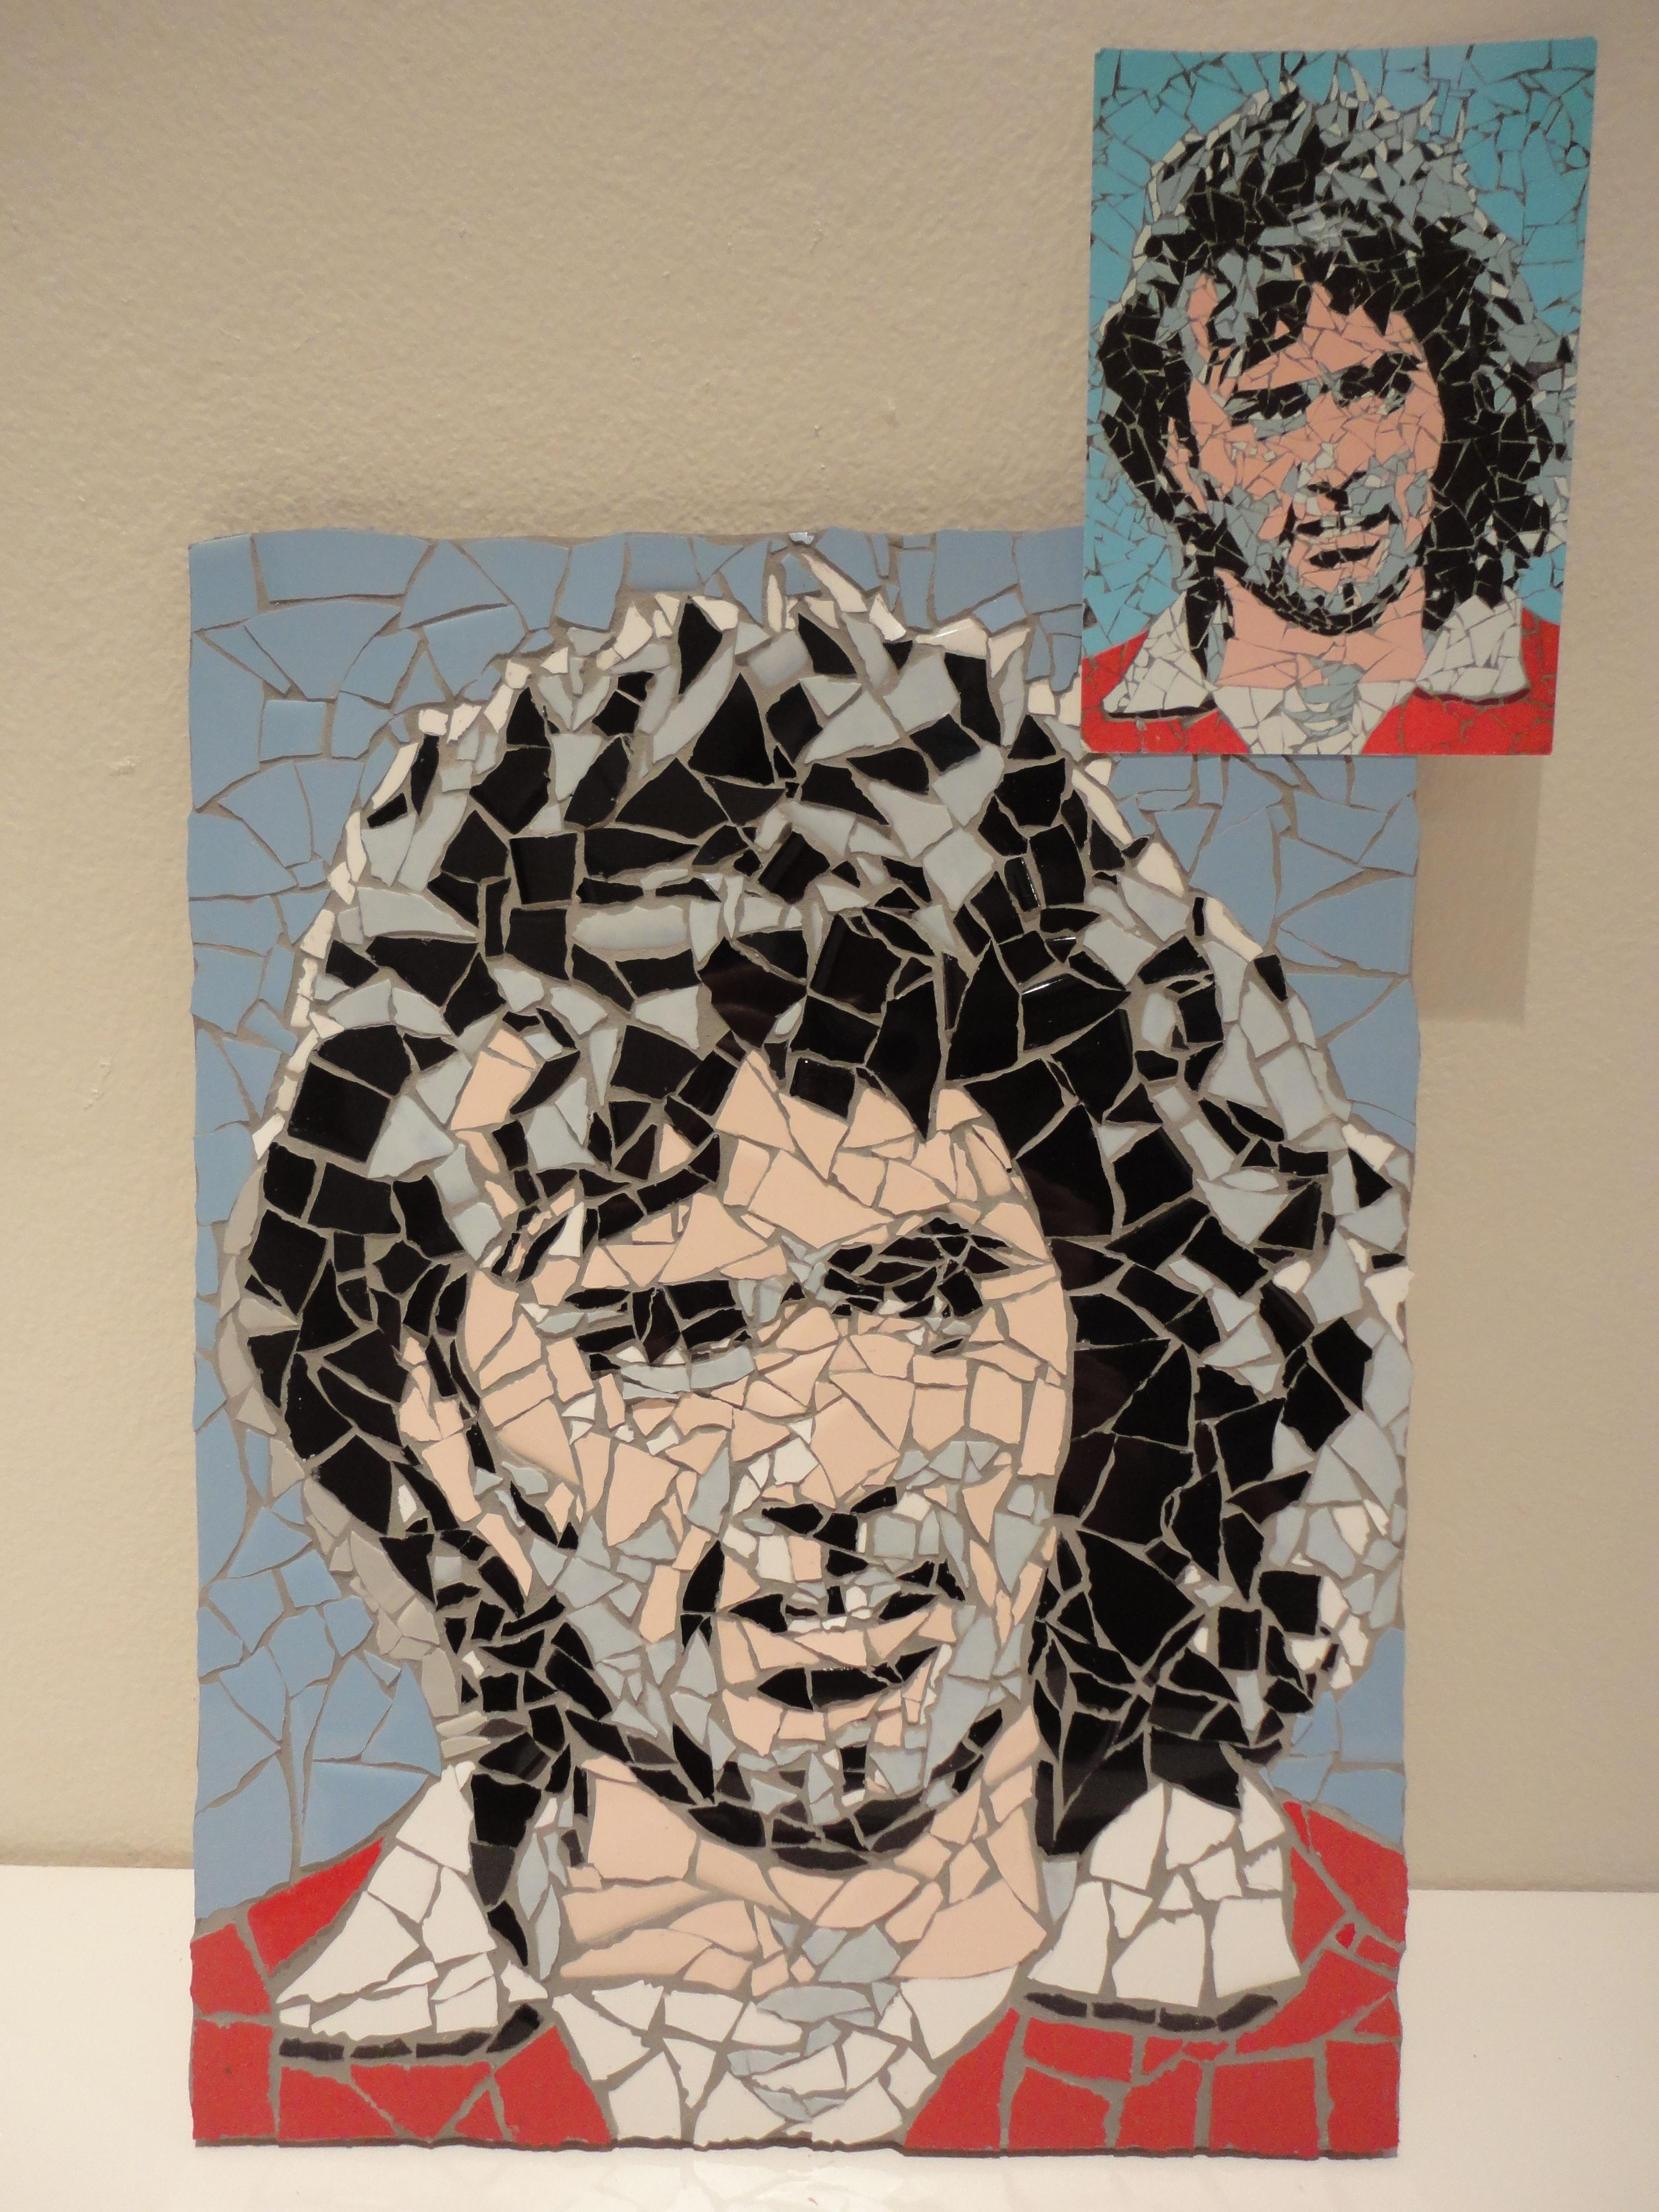 One of my more recent commissioned pieces - George Best the football legend